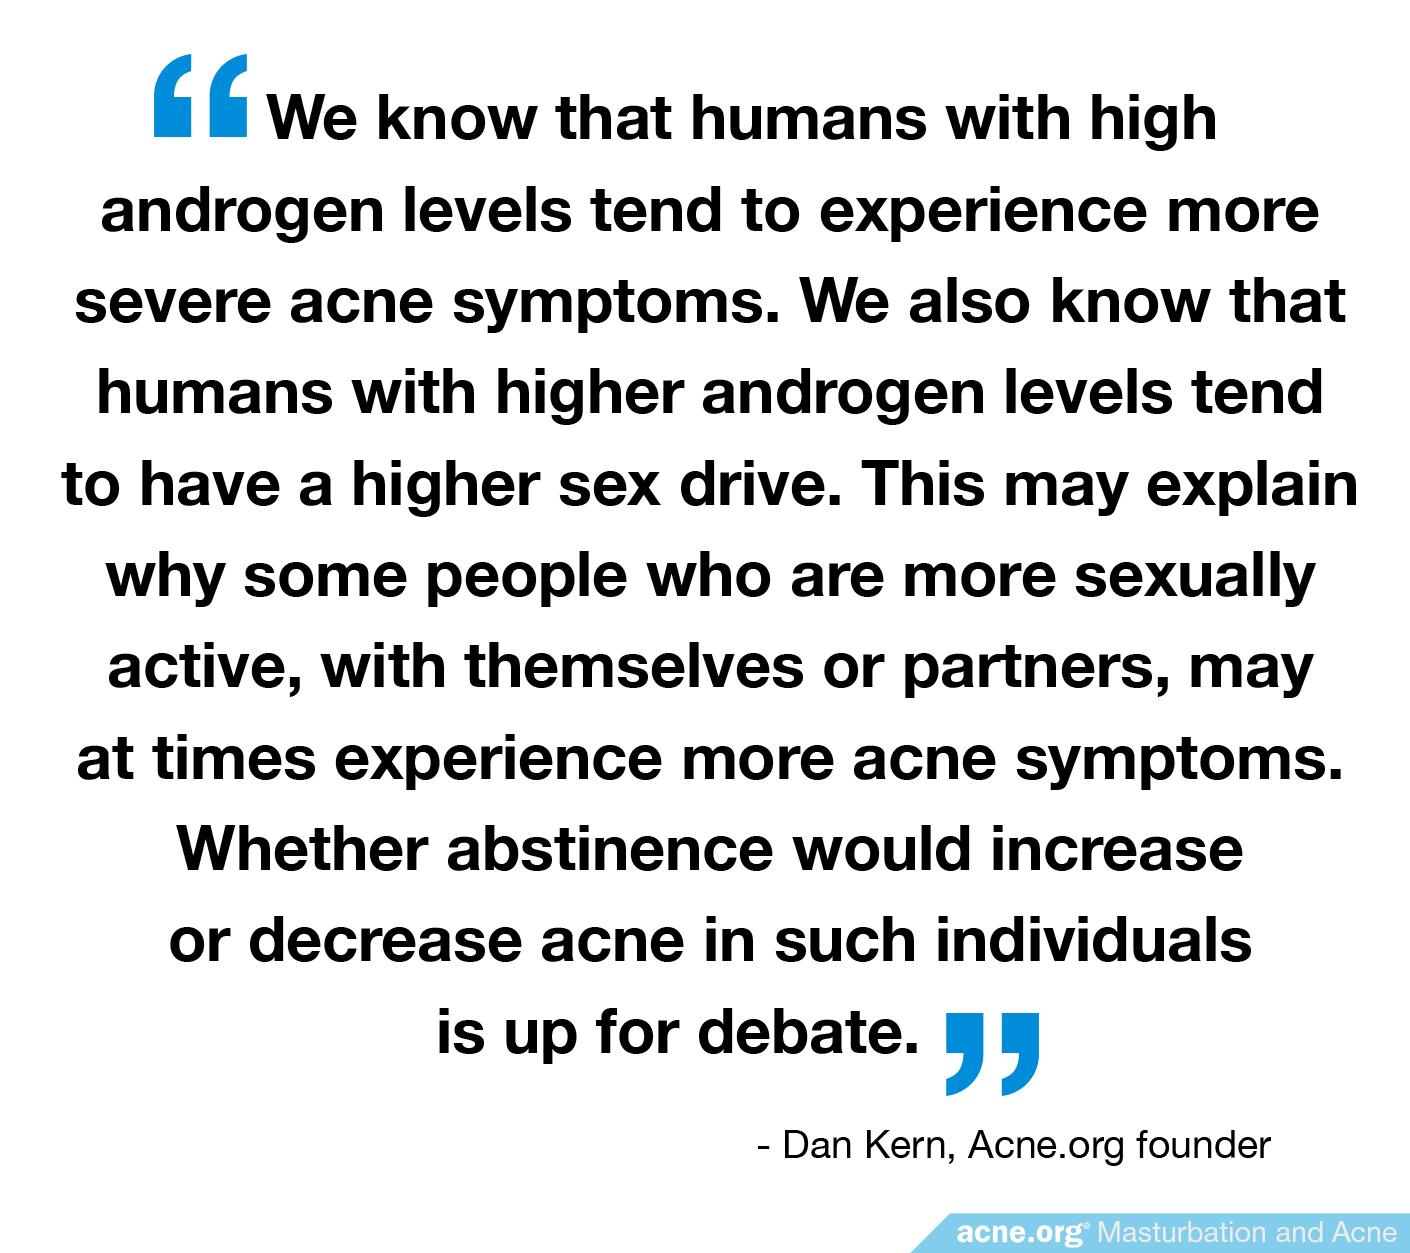 High Androgens, Sex Drive, and Acne